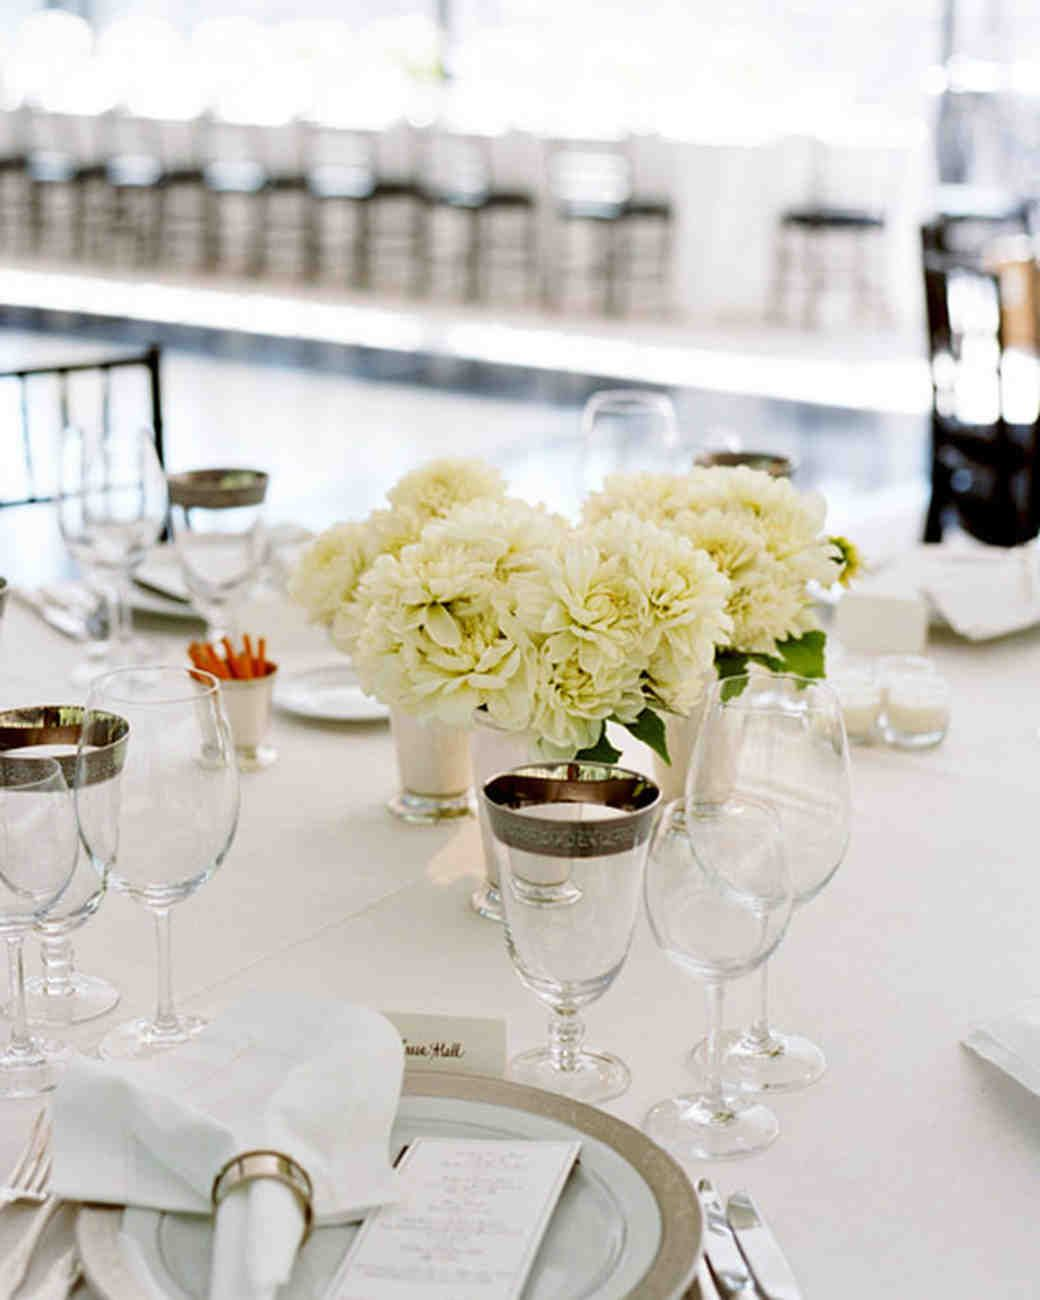 Classic Centerpiece | Wedding Centerpieces | Pinterest | Wedding ...